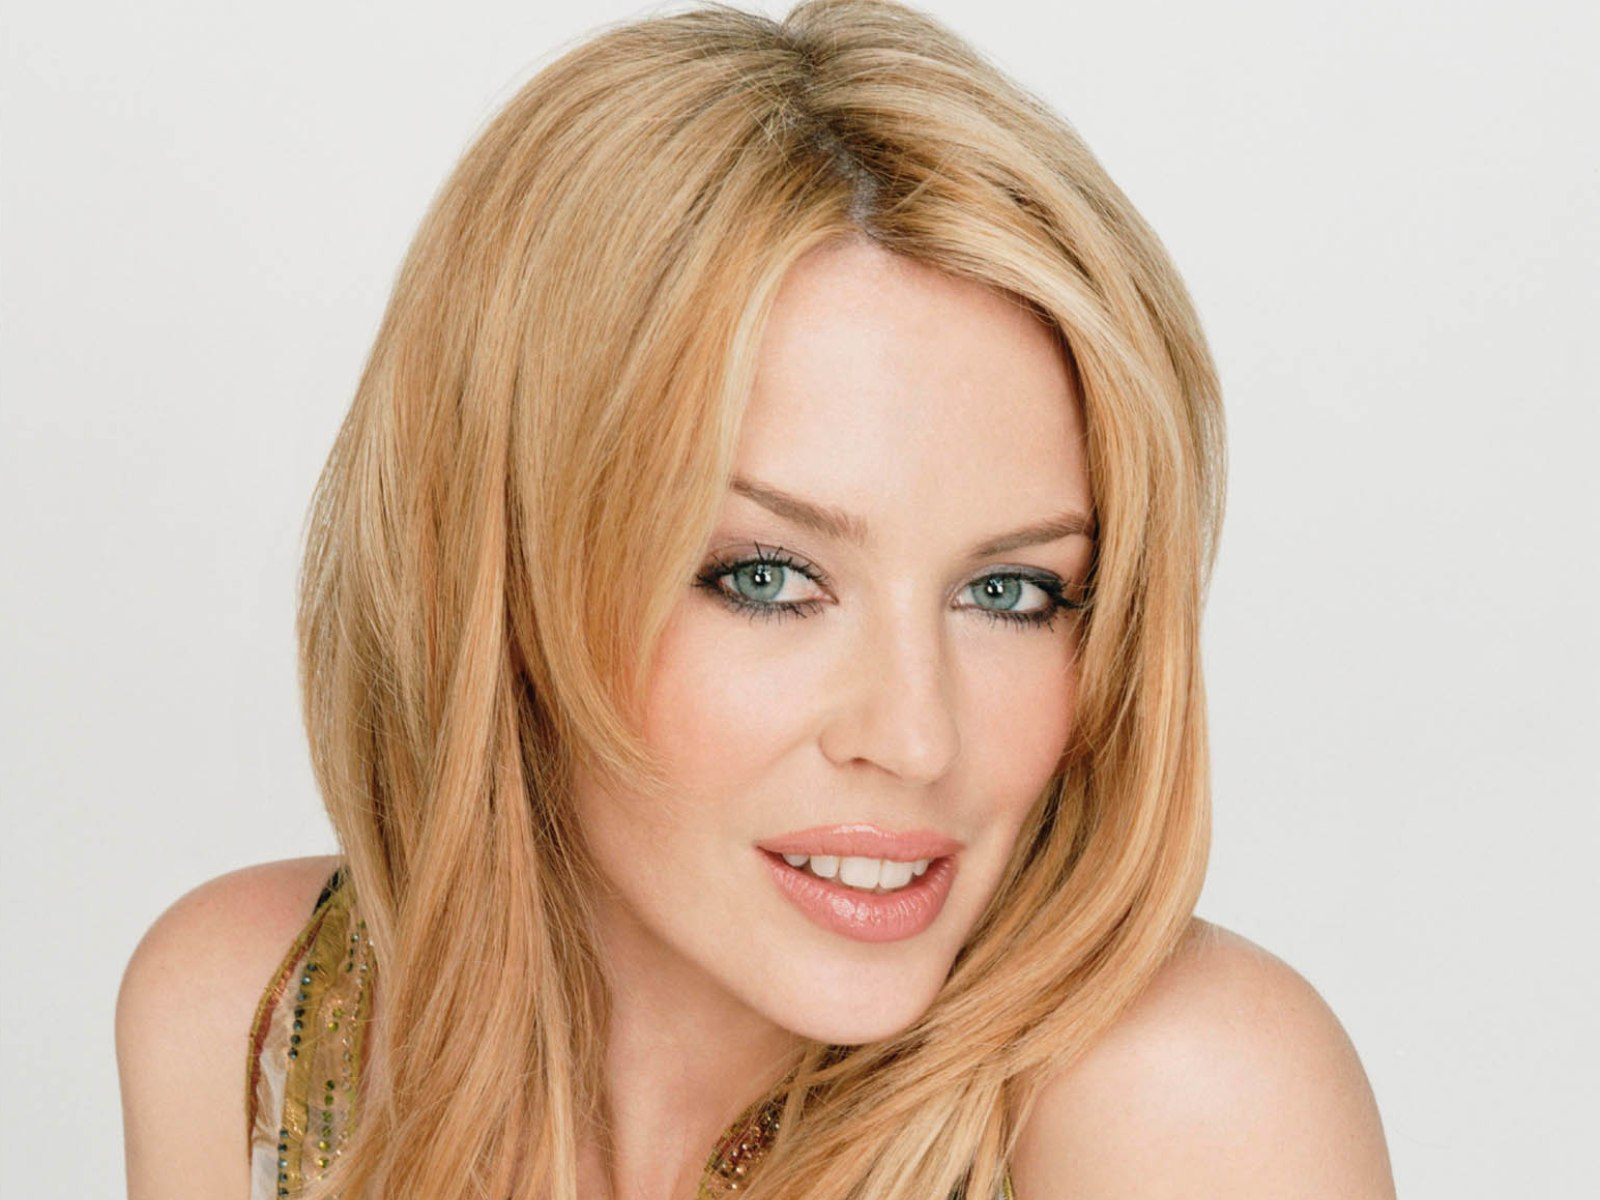 Kylie Minogue to Guest Star on ABC Family's 'Young & Hungry' - Ratings | TVbytheNumbers.Zap2it.com